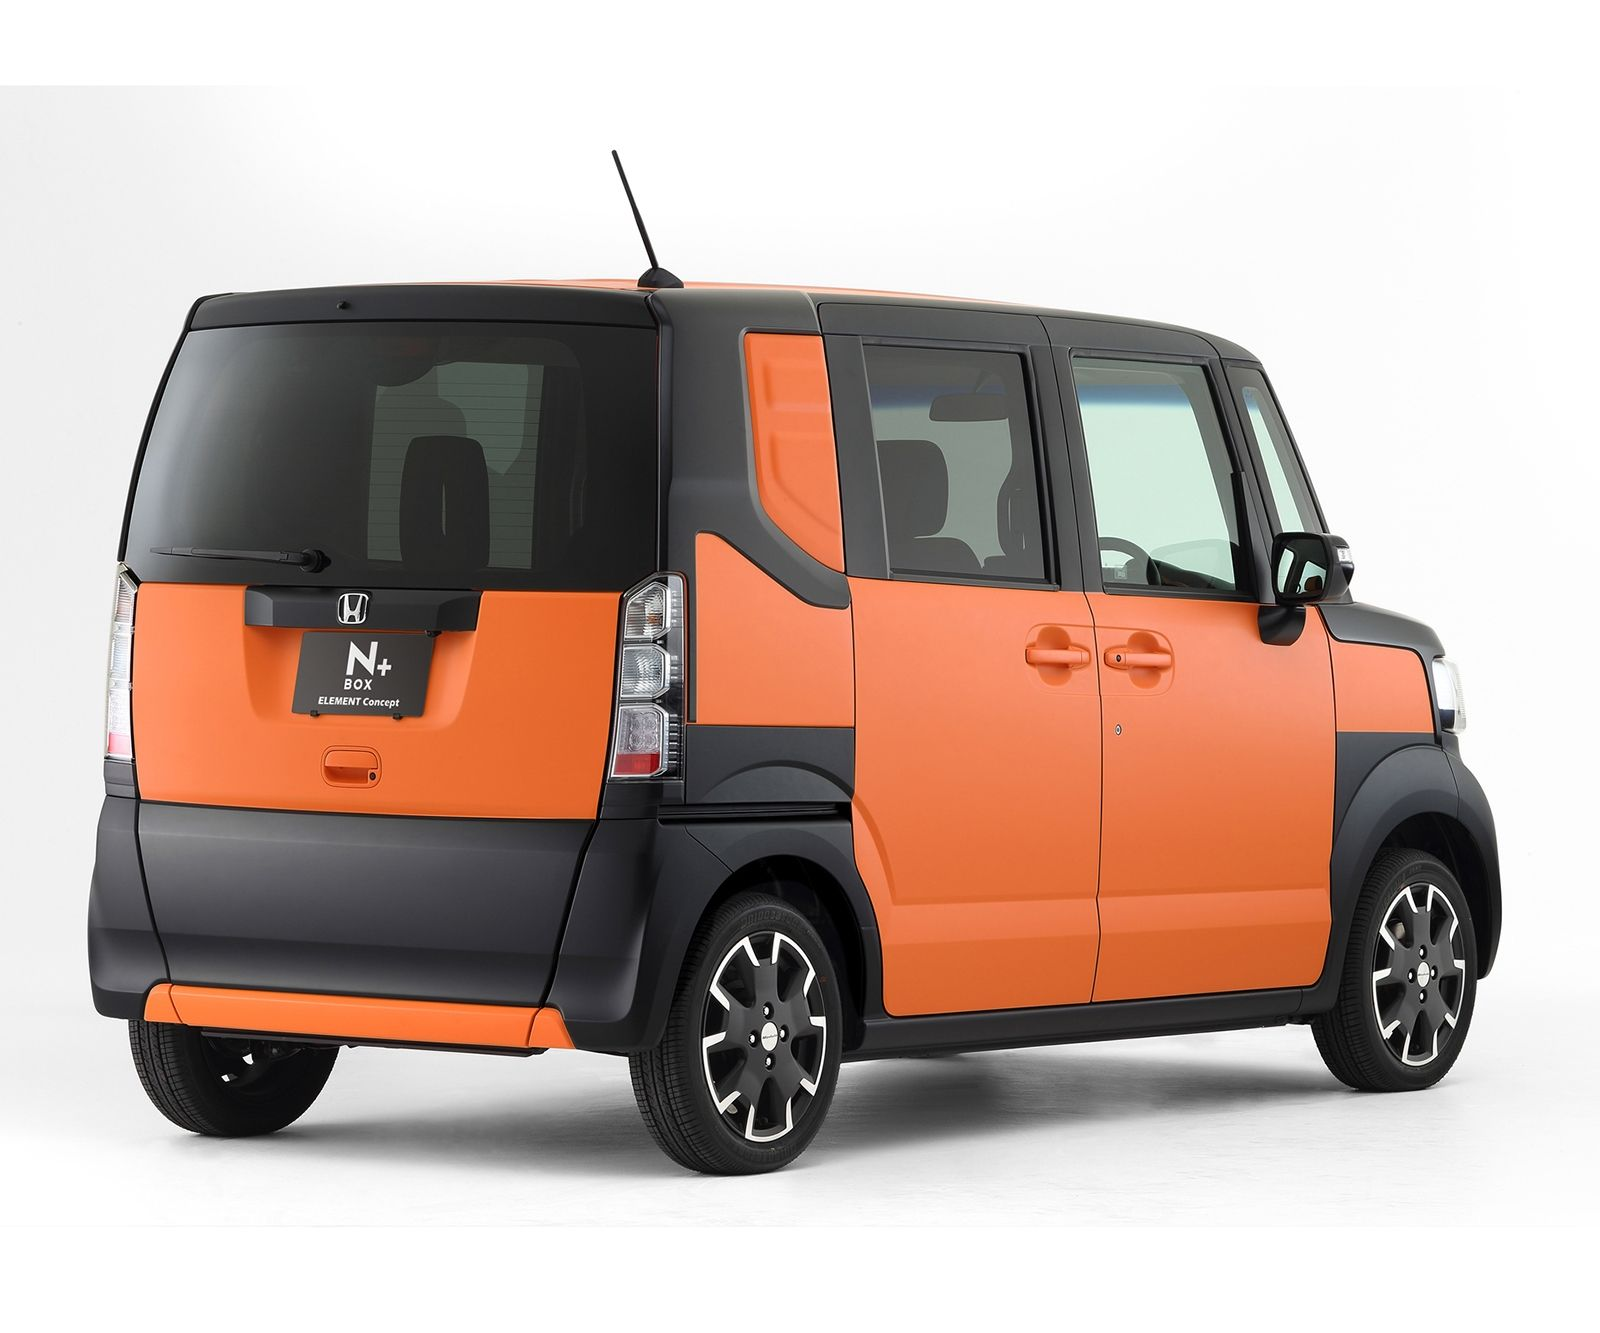 2017 honda element usa Here we offer a number of photos